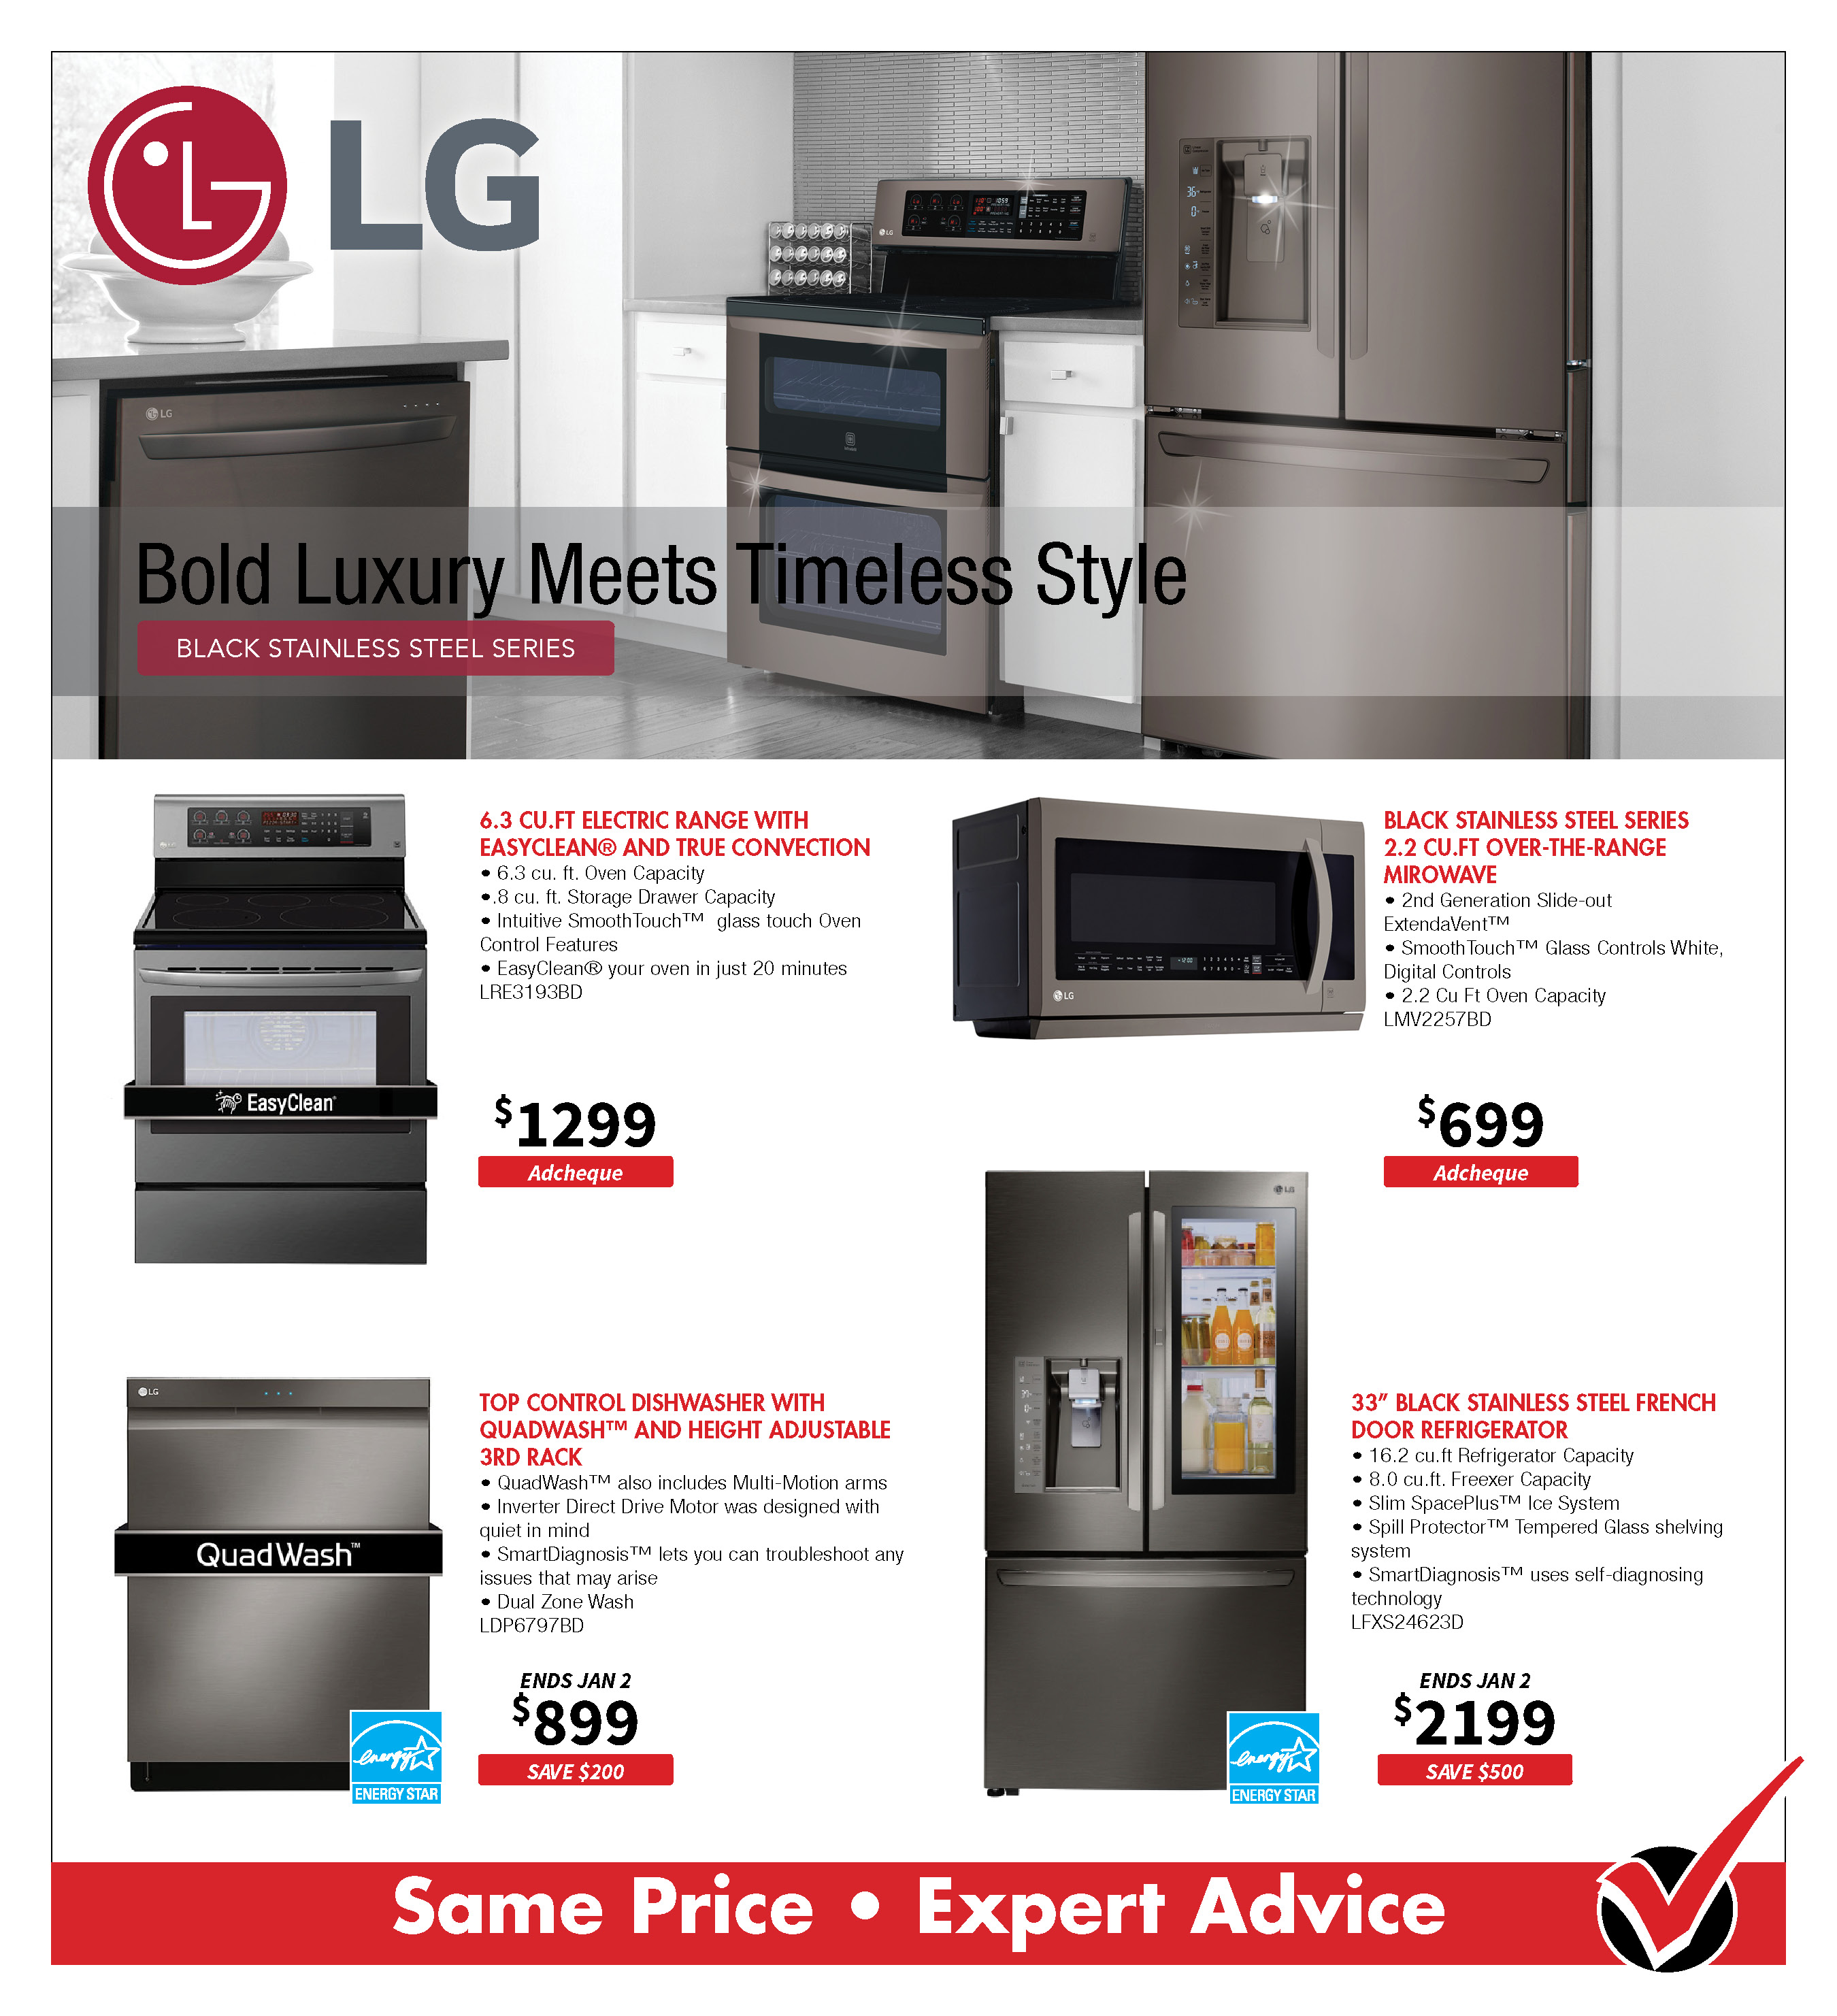 LG Black Stainless Steel Appliances